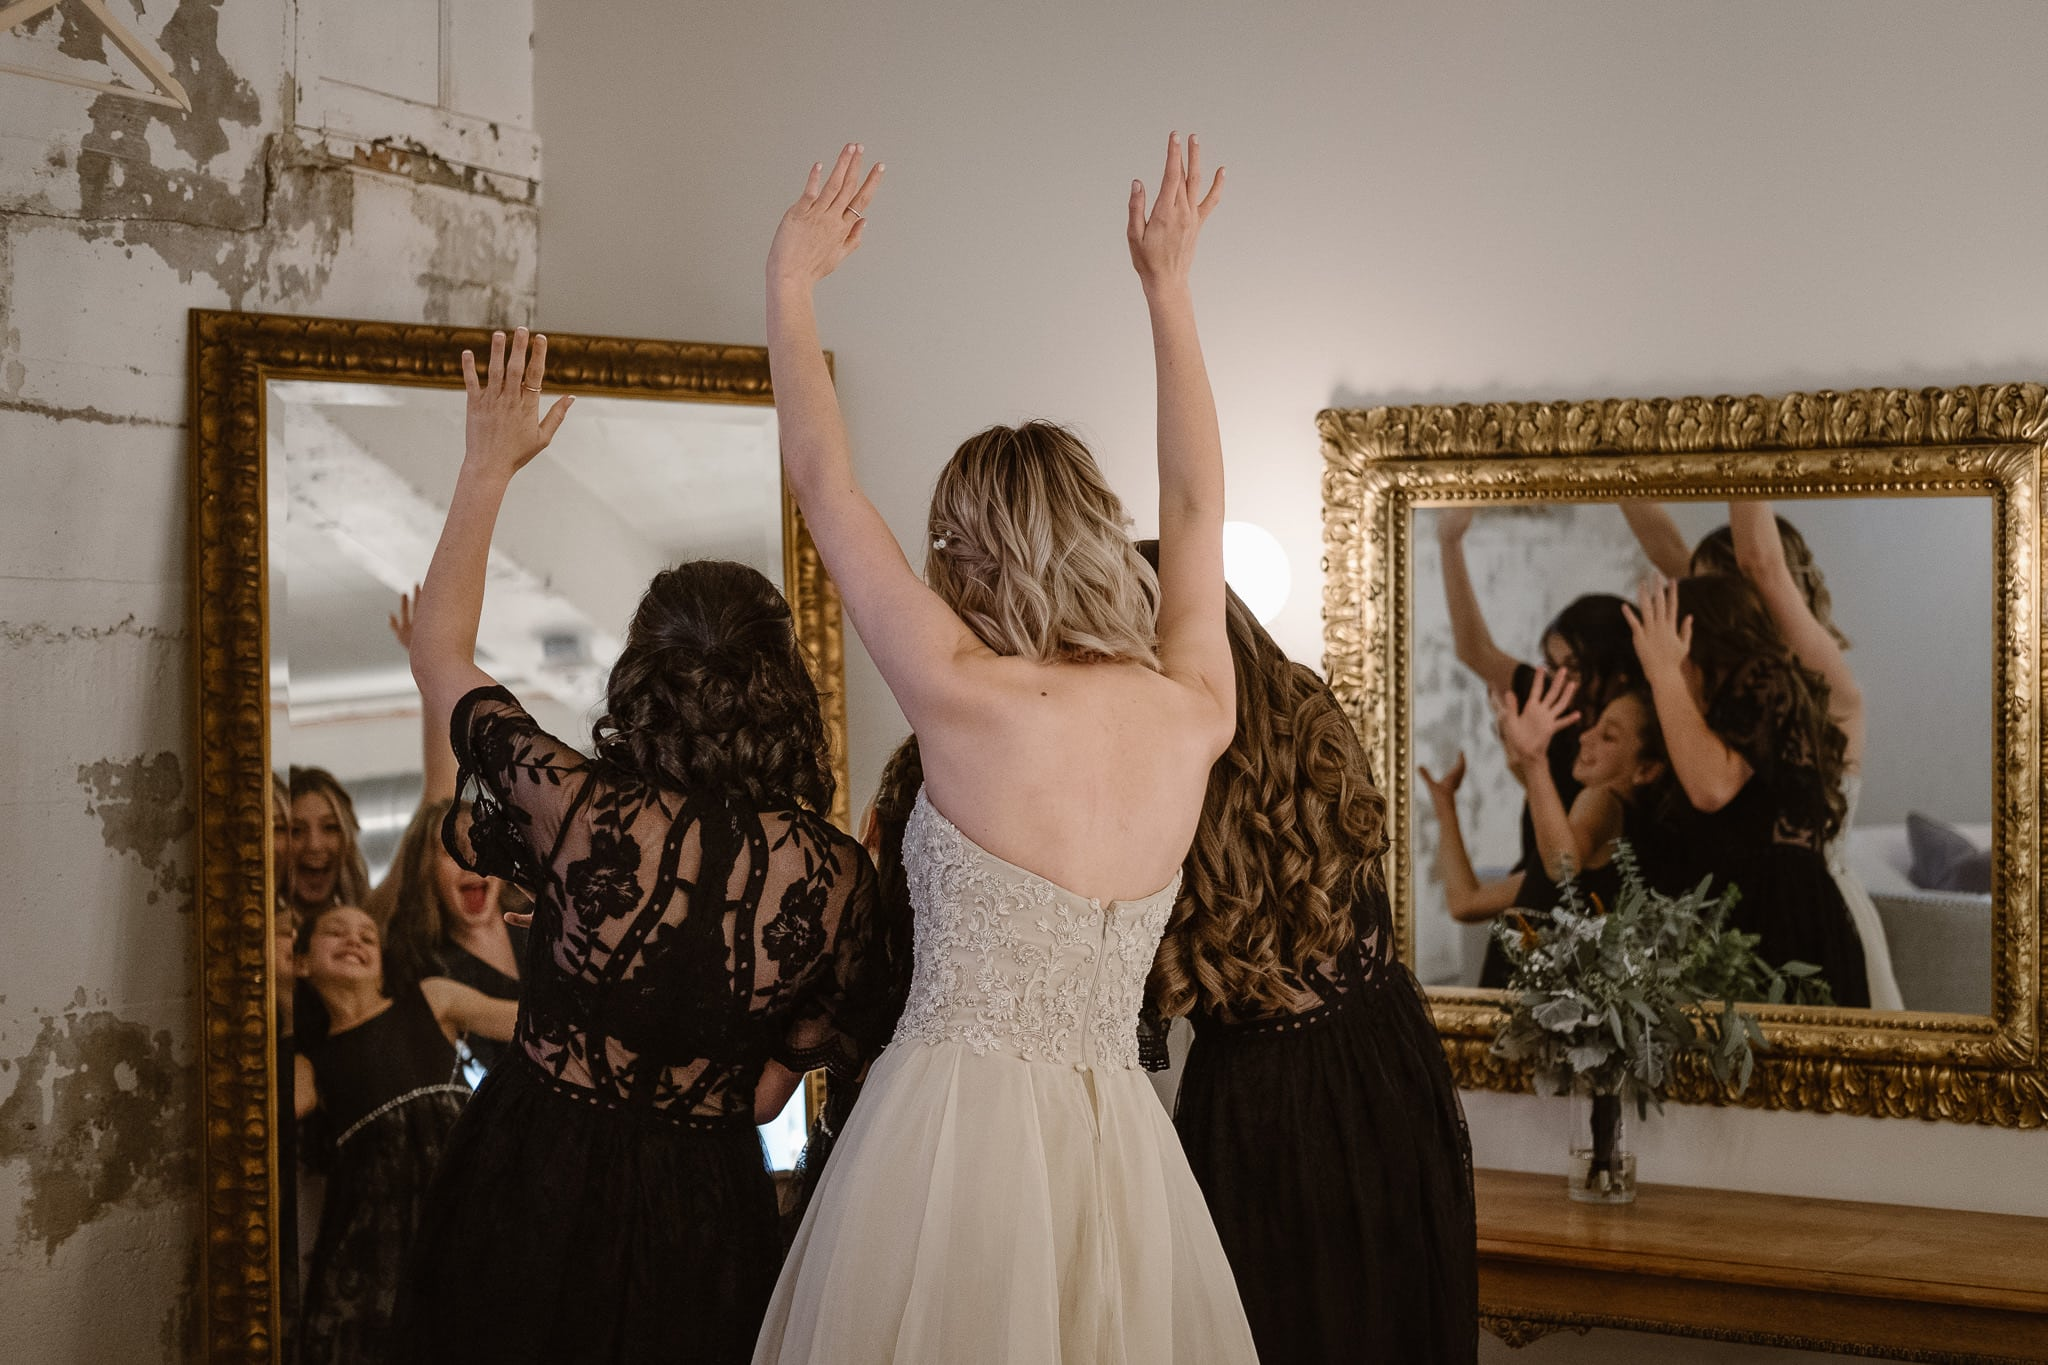 St Vrain Wedding Photographer | Longmont Wedding Photographer | Colorado Winter Wedding Photographer, Colorado industrial chic wedding, bride with her little sisters